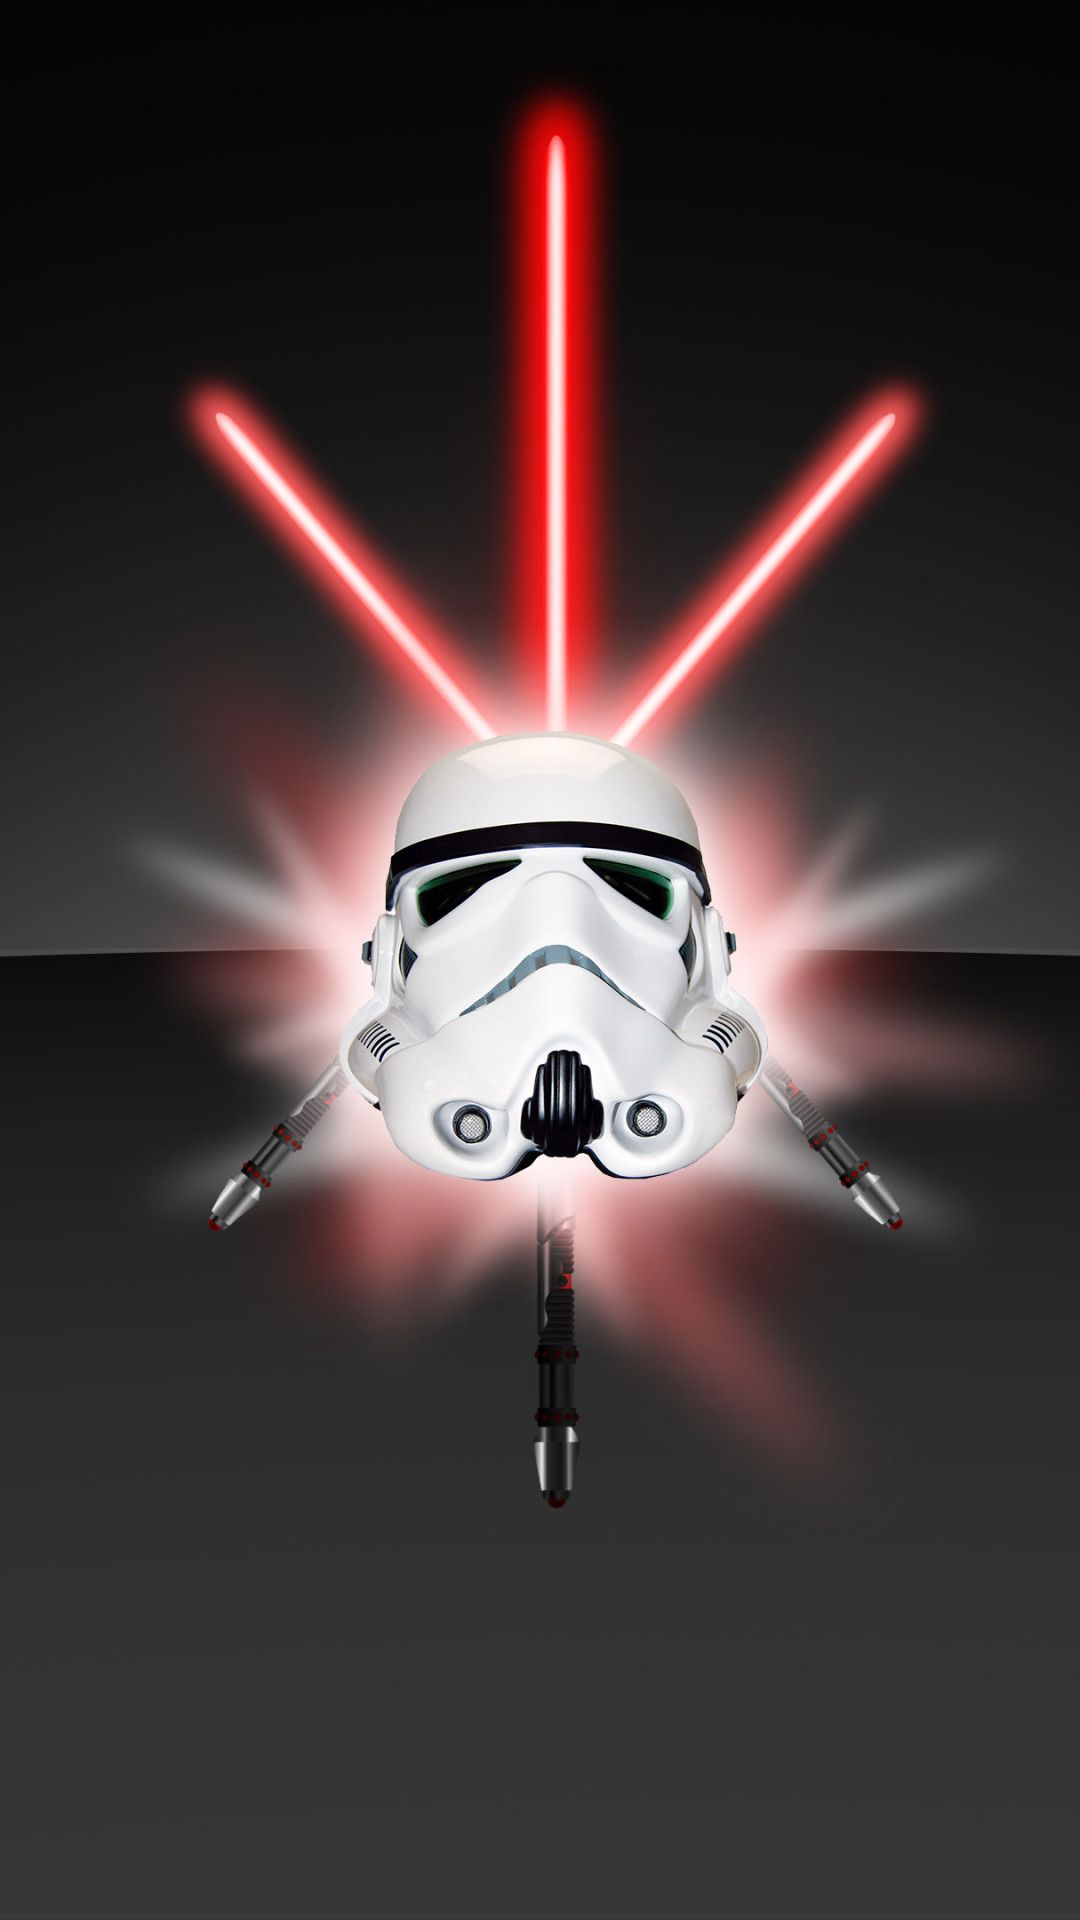 Star Wars iPhone 6 - Android, iPhone, Desktop HD Backgrounds / Wallpapers (1080p, 4k) (354318) - Sci-fi